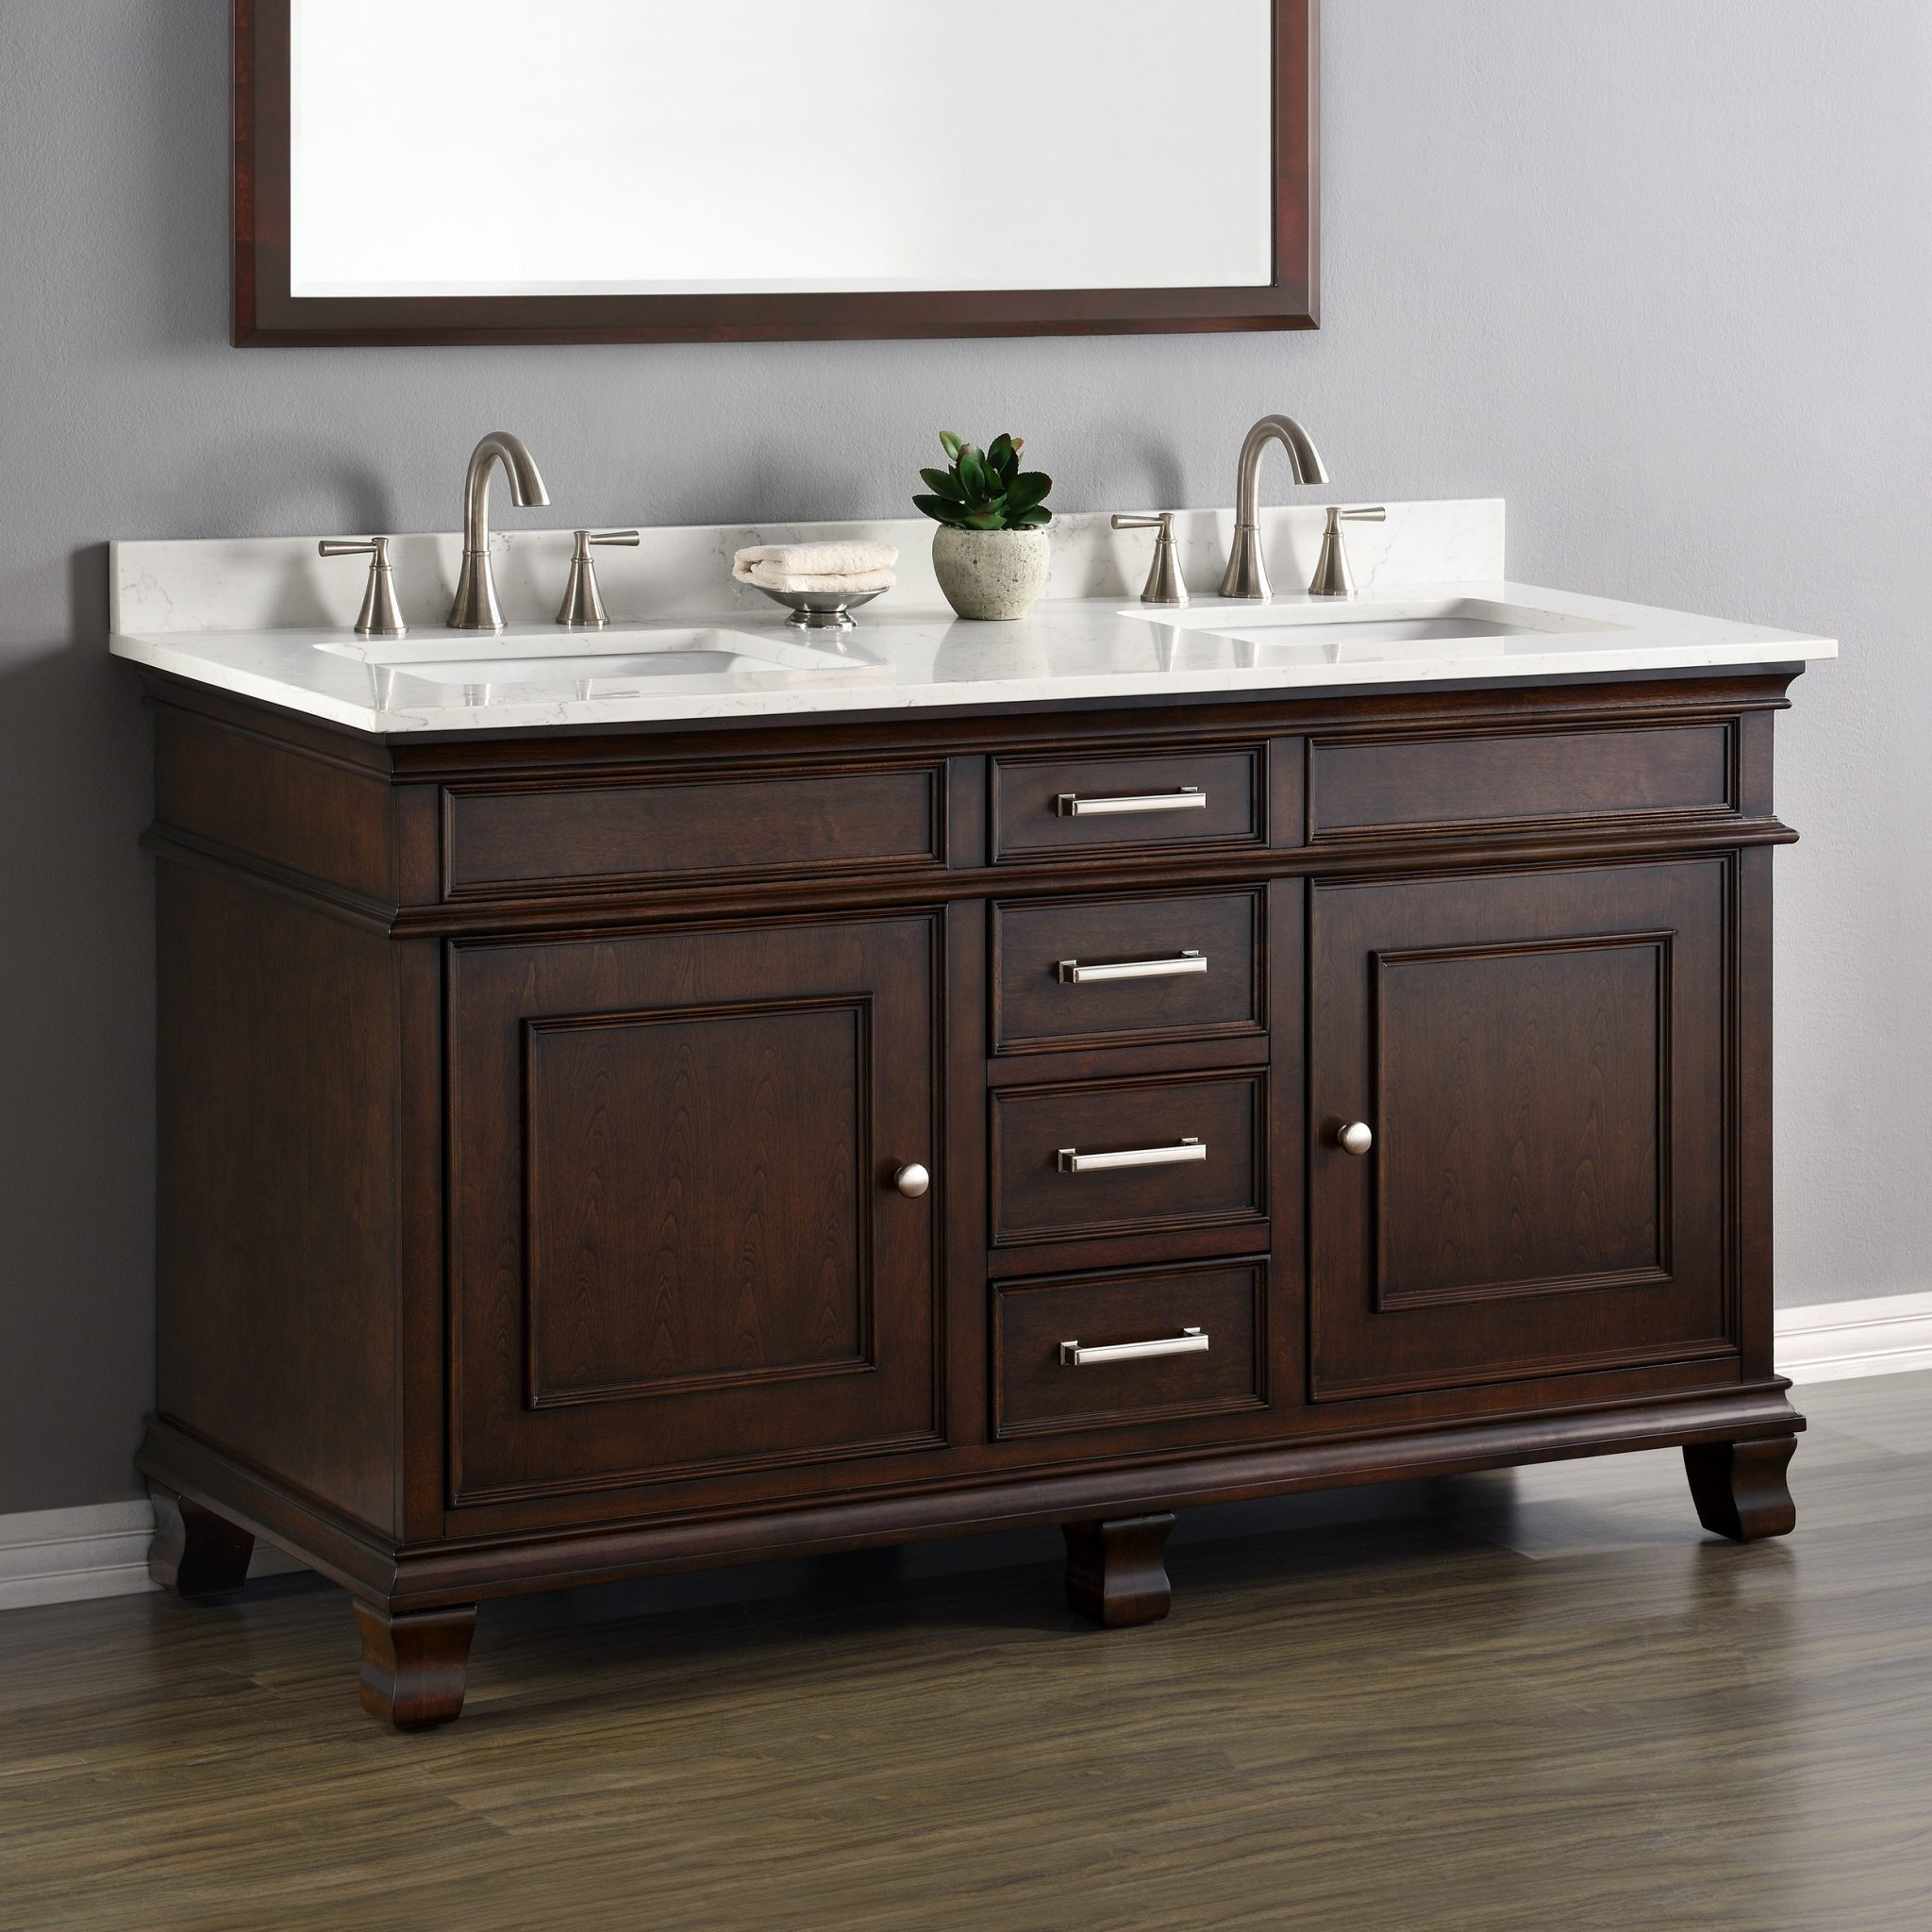 Camden 60 double sink vanity mission hills furniture for Pictures of bathrooms with double sinks